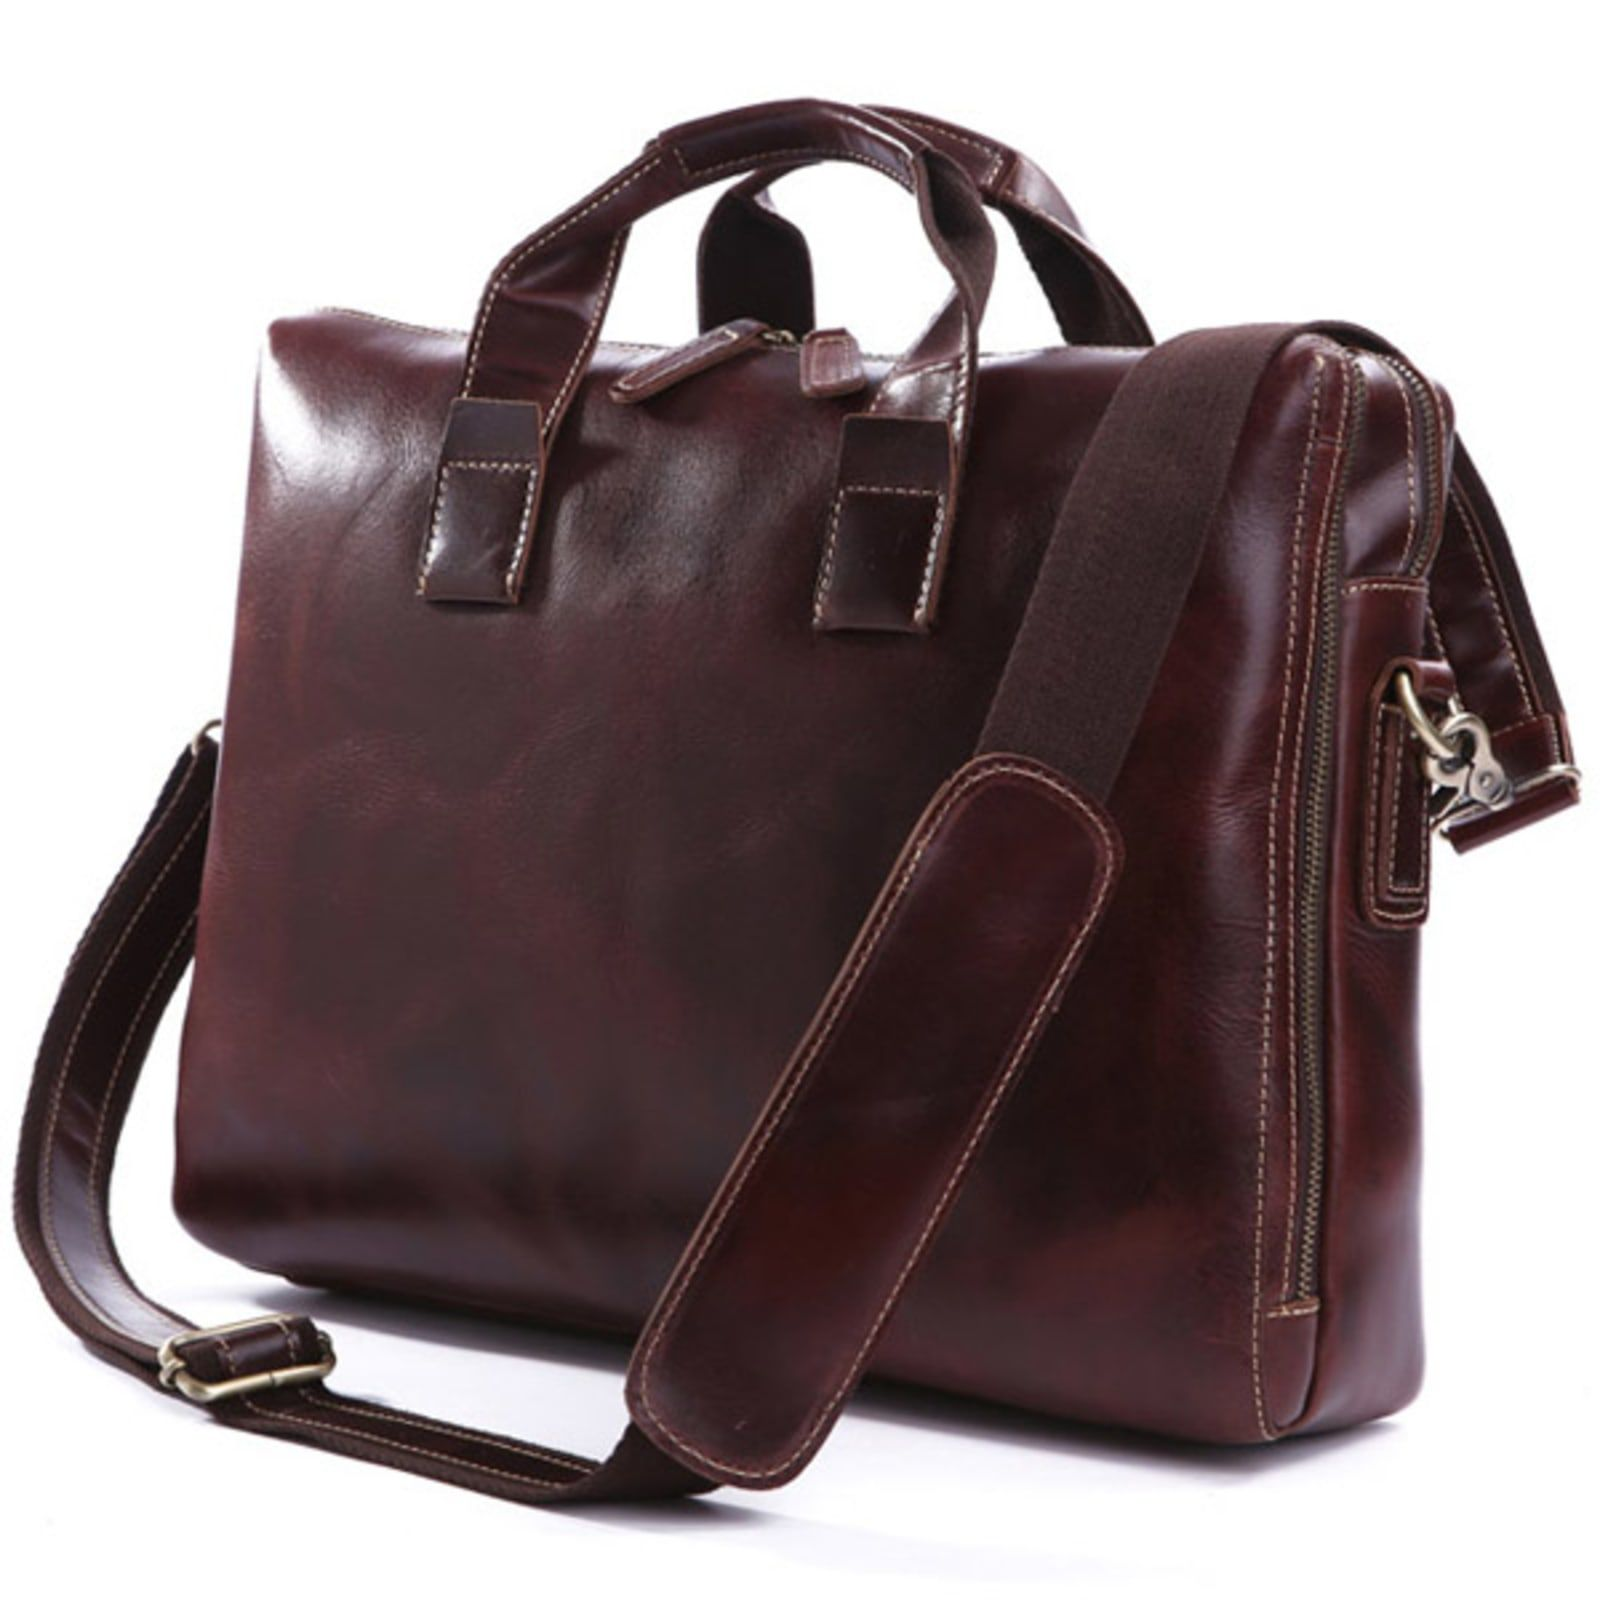 Photo of Brown Modern Lined Leather Bag | In stock! | Delton Bags